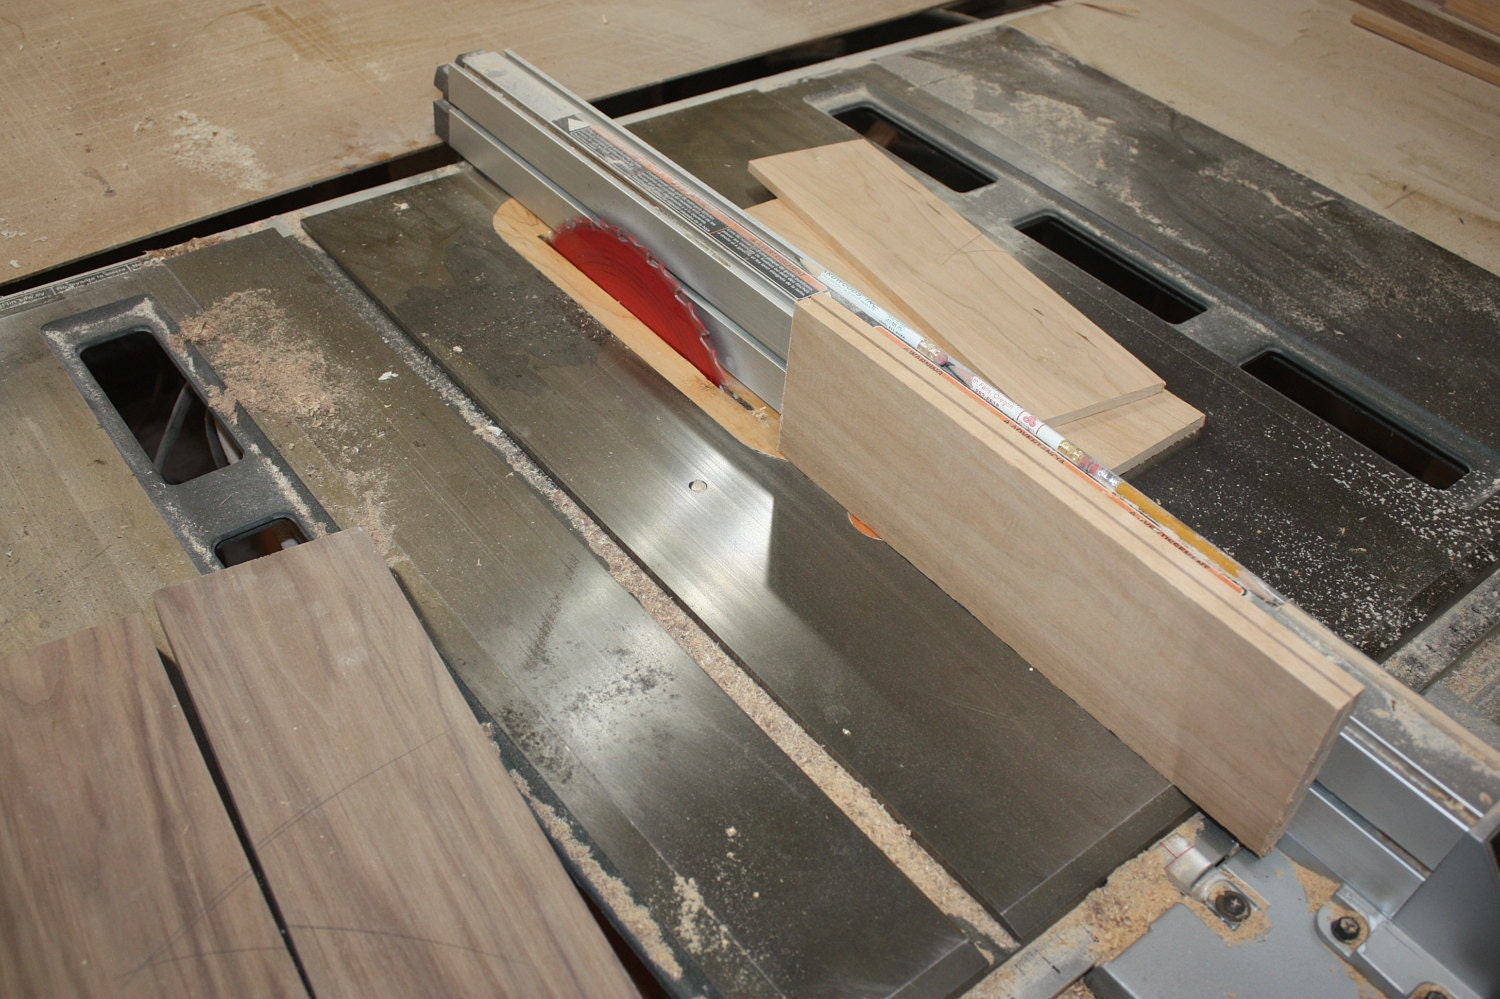 Making a laminated Lid for Jewelry boxes